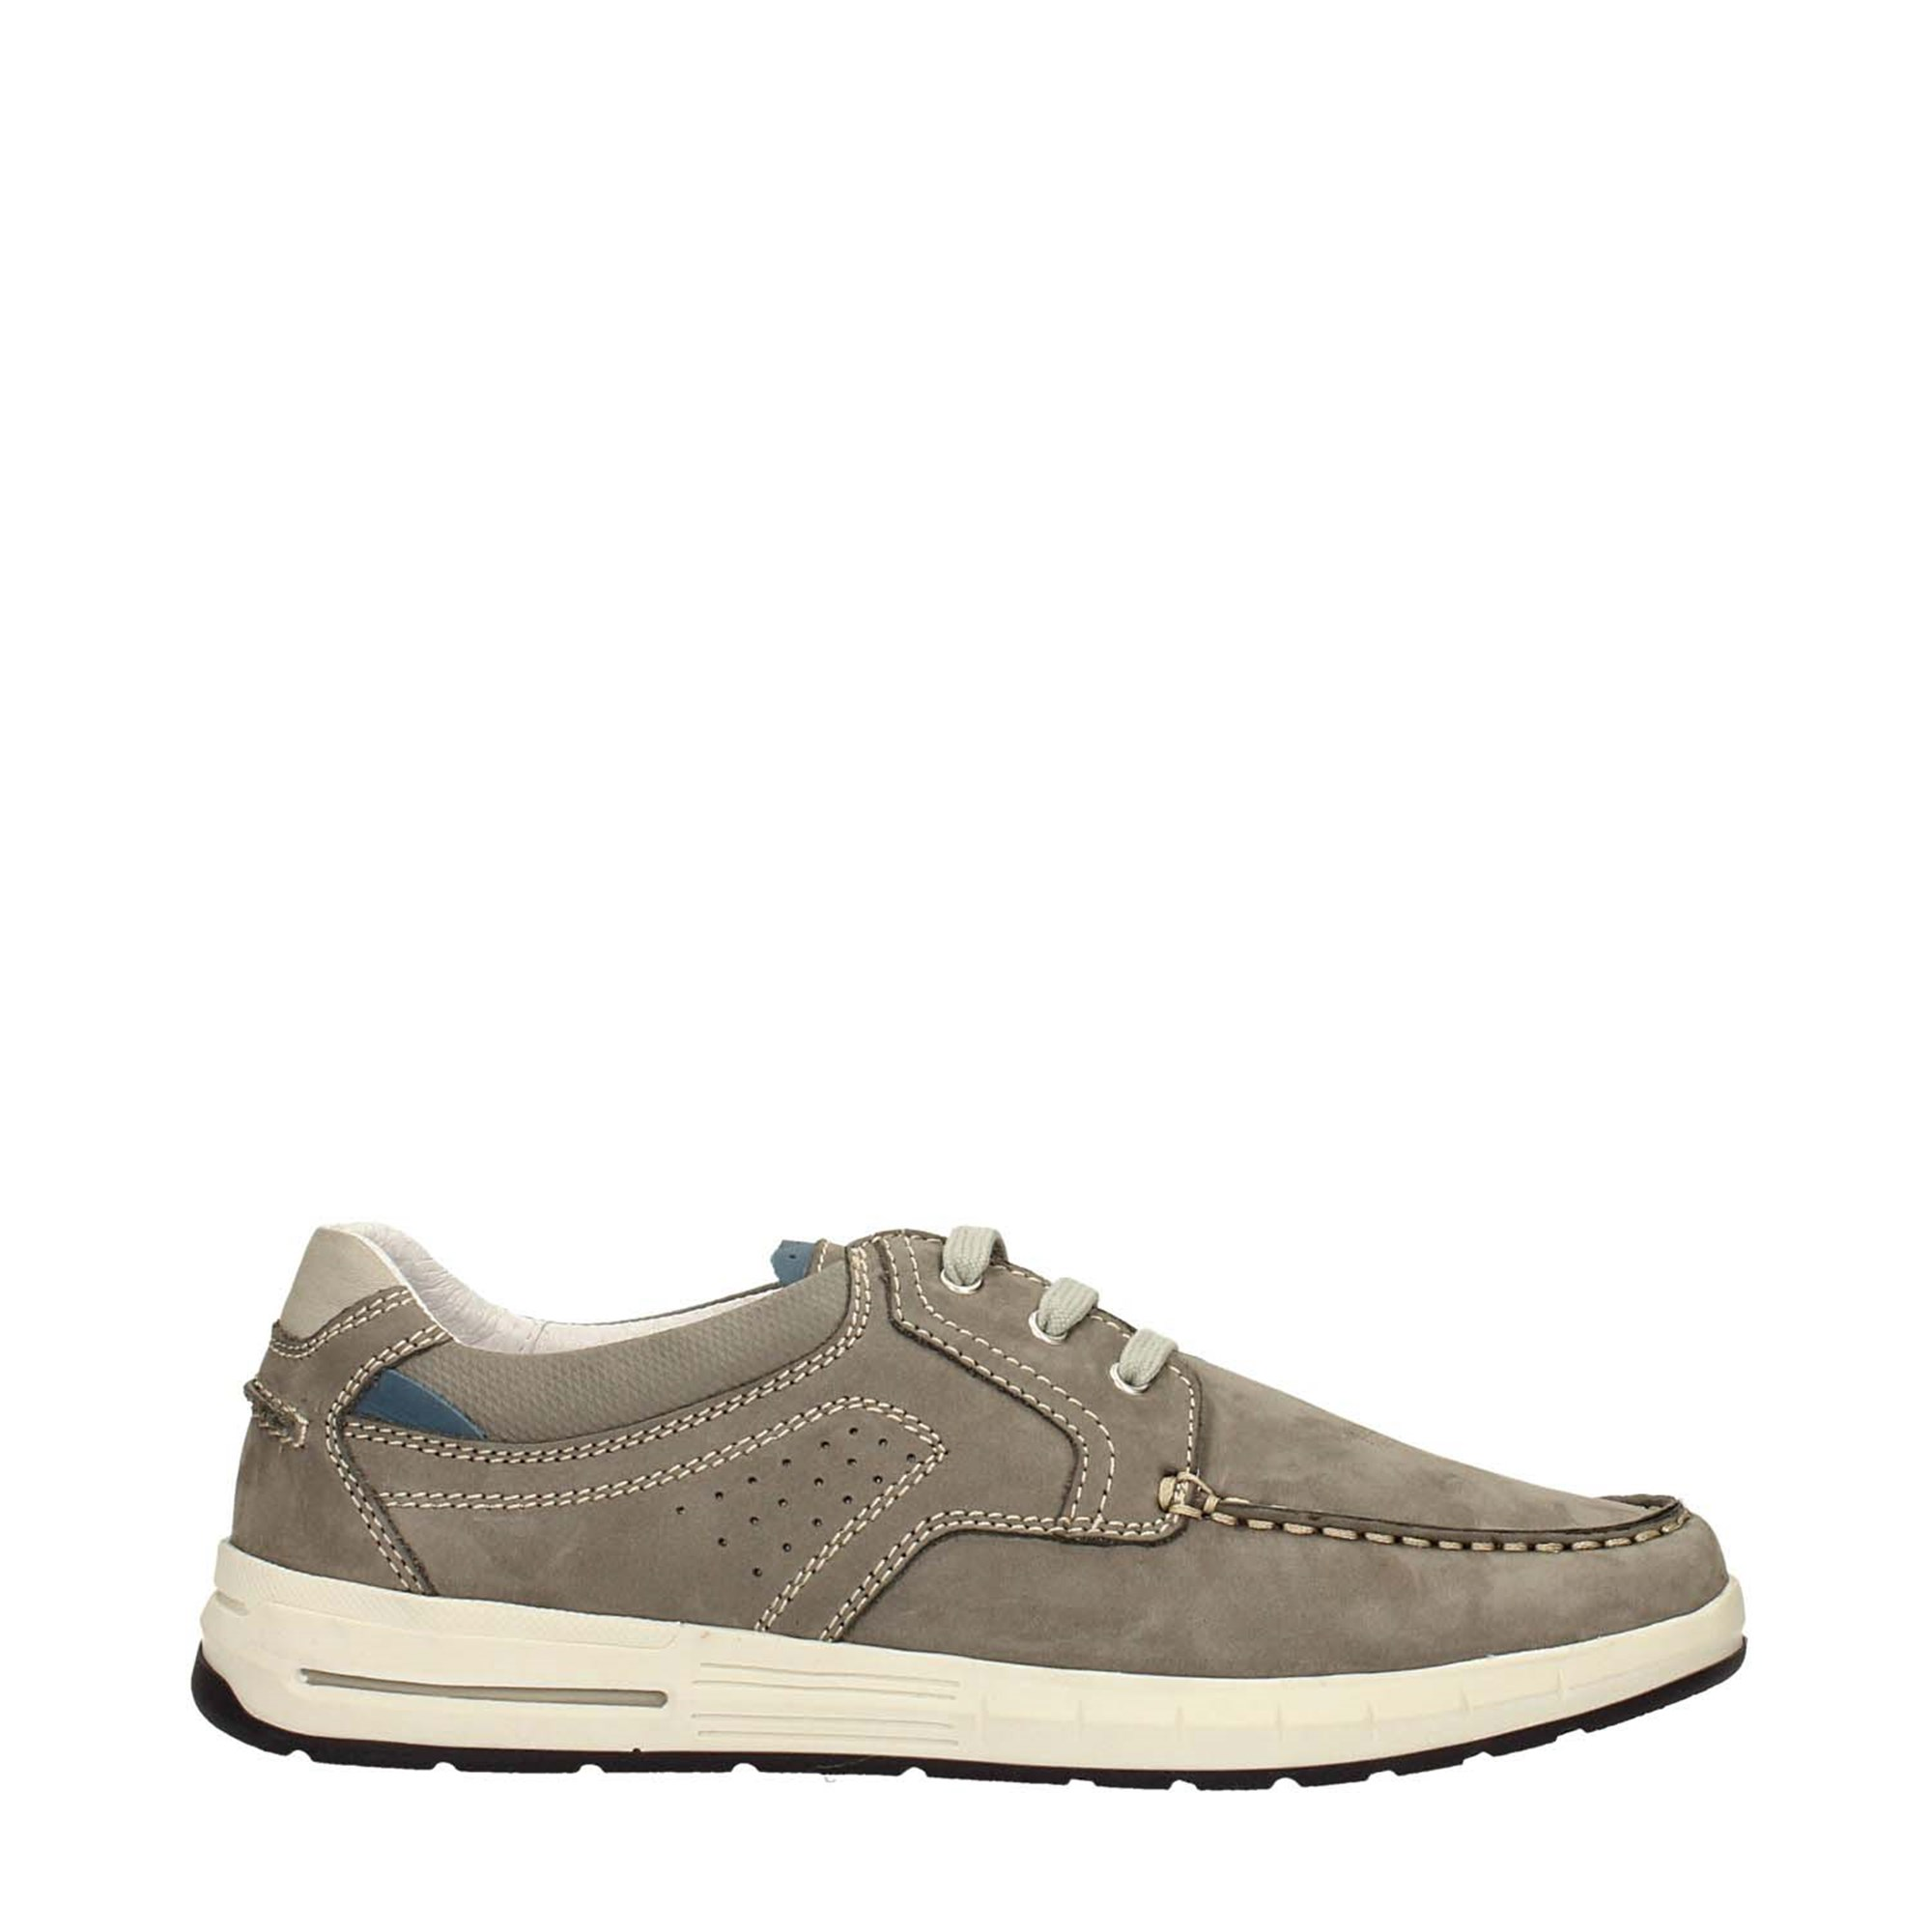 Tata Italia Shoes Man Sneakers 8192